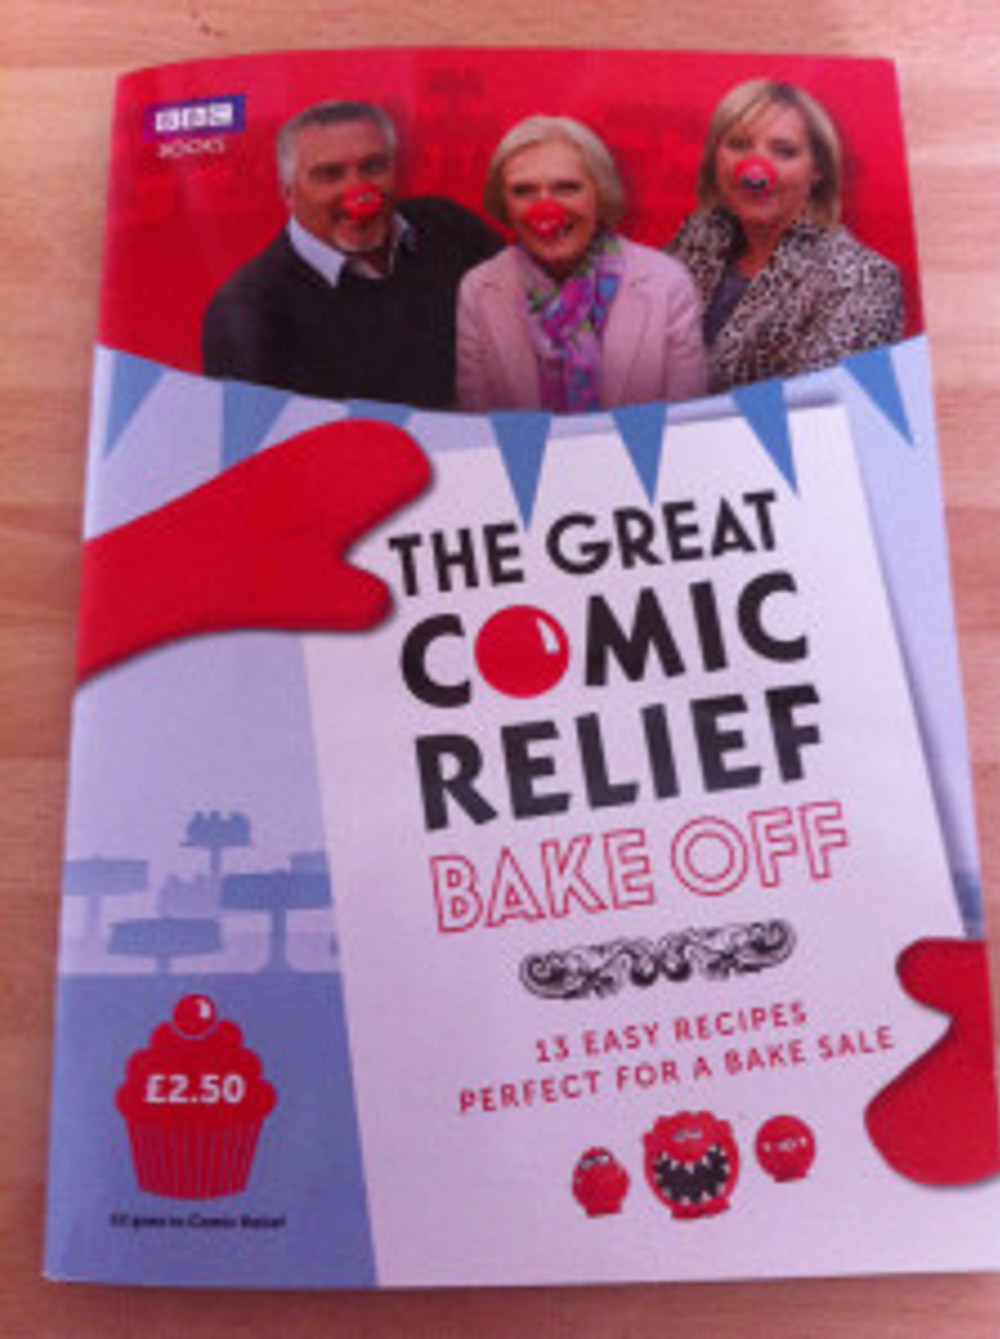 The Great Comic Relief Bake Off Book. Cost £2.50 with at least £2 going to Comic Relief.